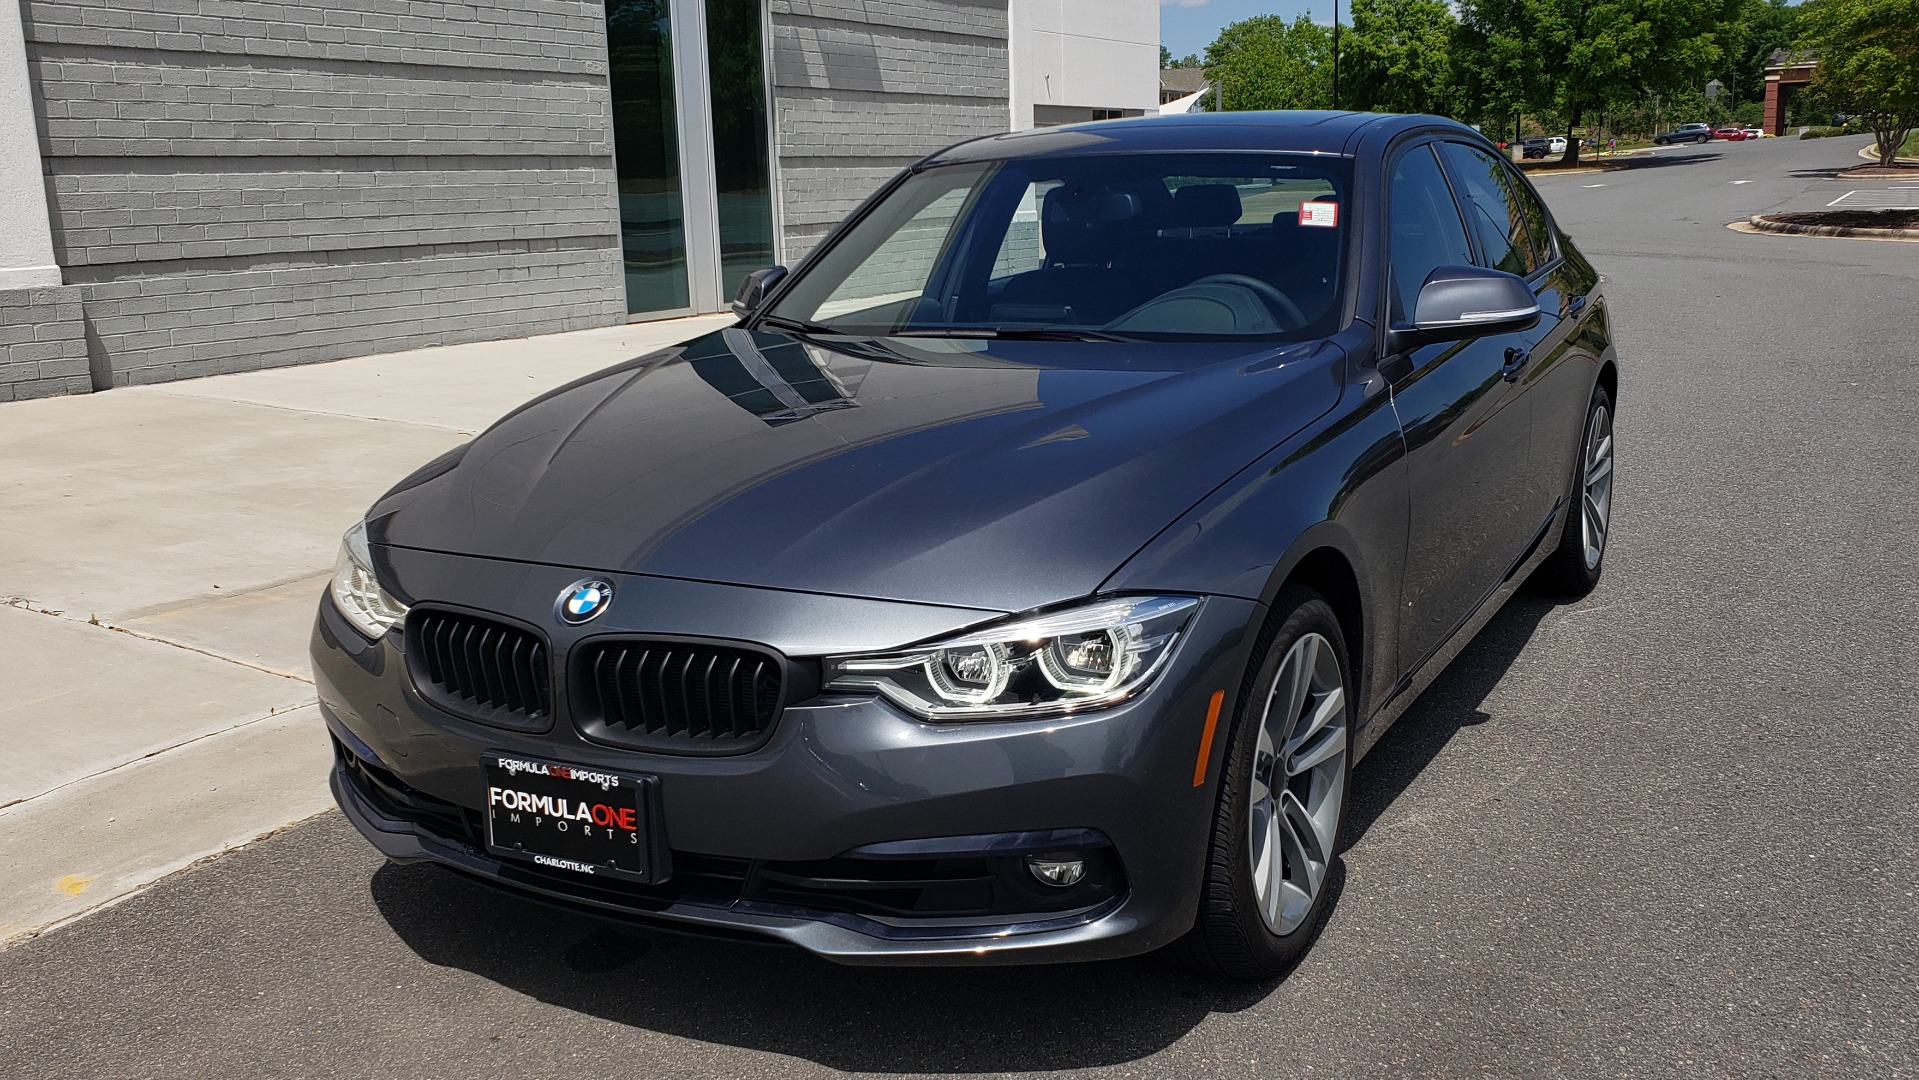 Used 2018 BMW 3 SERIES 330I XDRIVE / CONV PKG / SUNROOF / SPORT STS / HTD STS / REARVIEW for sale $28,495 at Formula Imports in Charlotte NC 28227 1